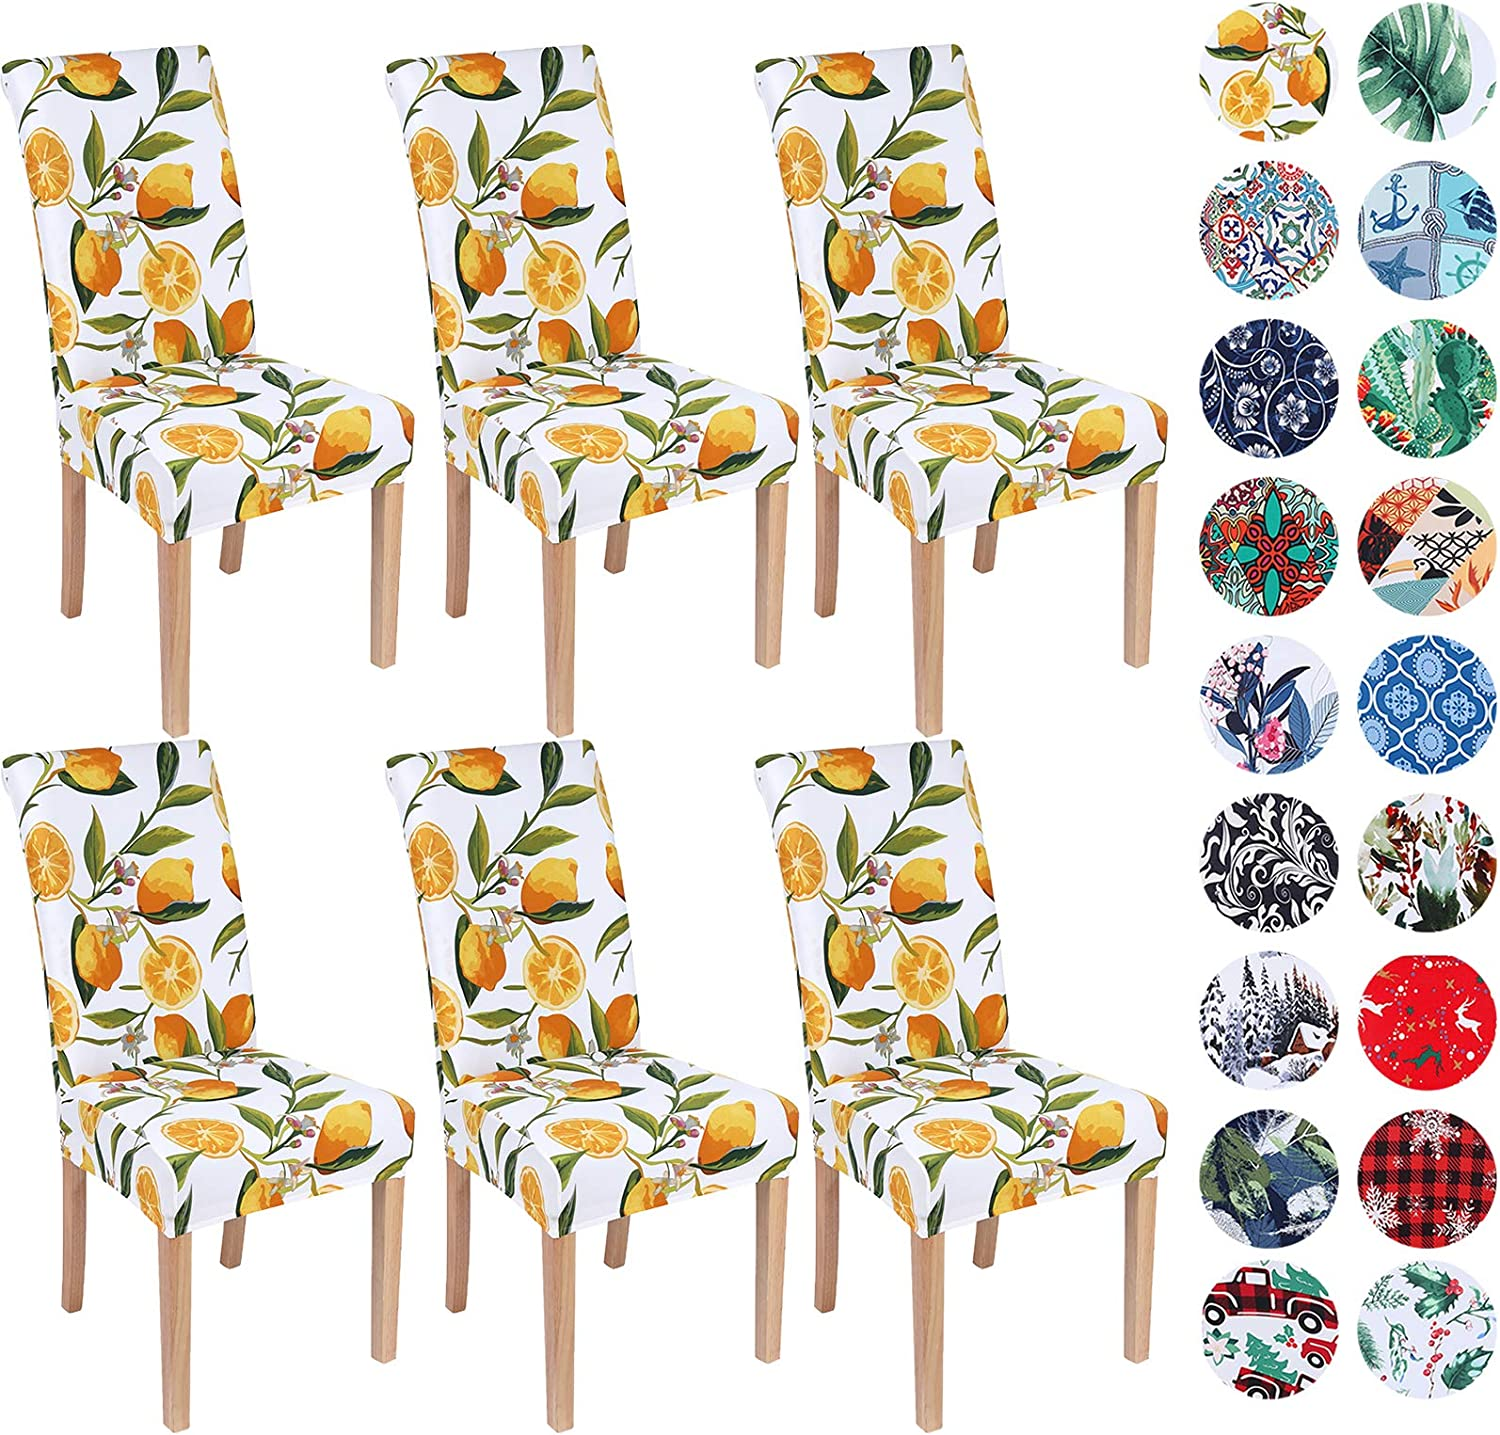 Spandex Chair Seat Pad Removable Stretch Covers Elastic Edge Dining Party Decor